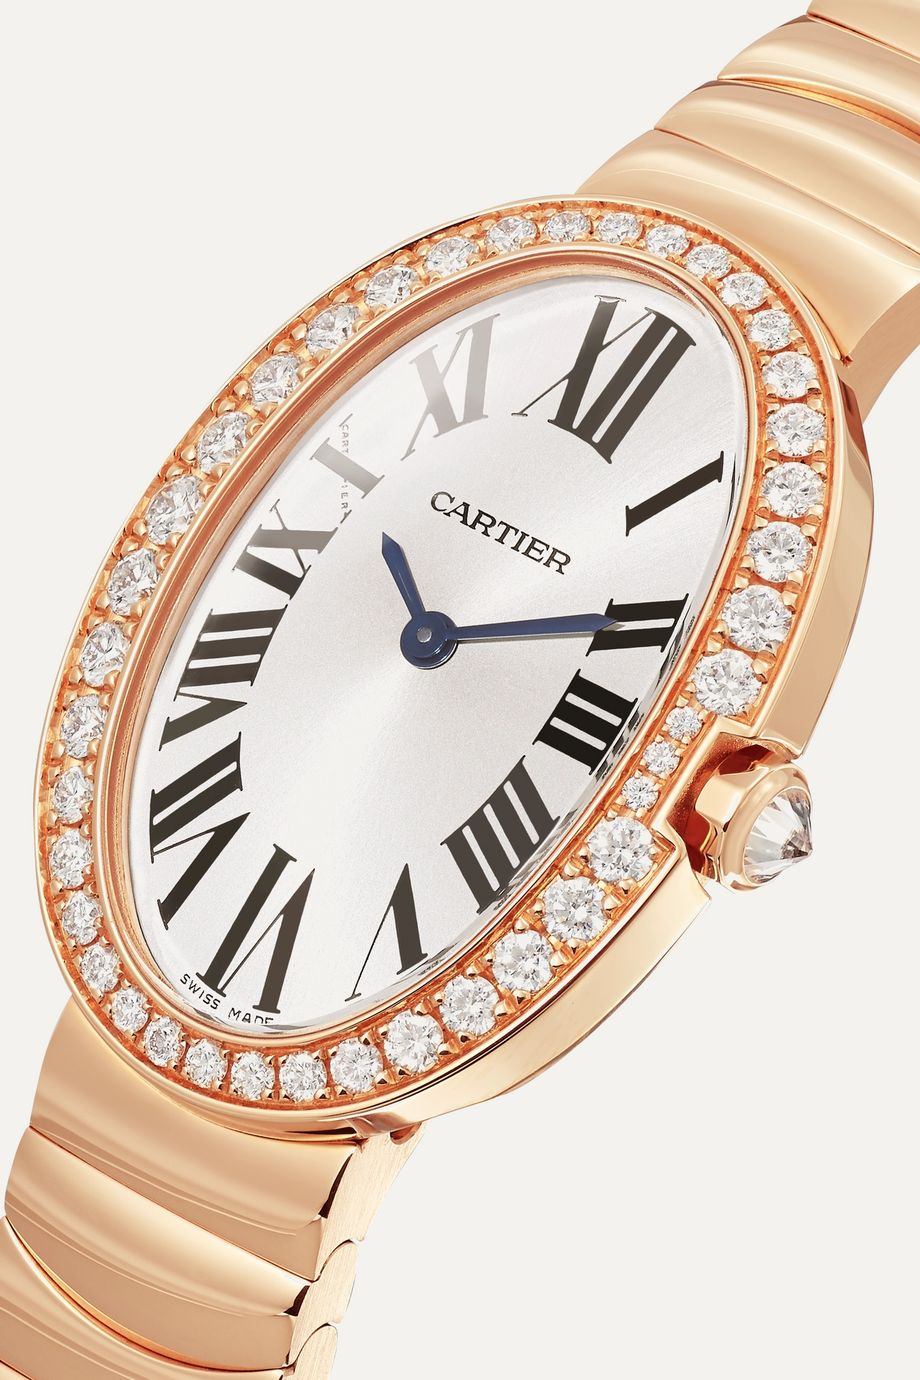 Cartier Montre en or rose 18 carats et diamants Baignoire Small 24,5 mm